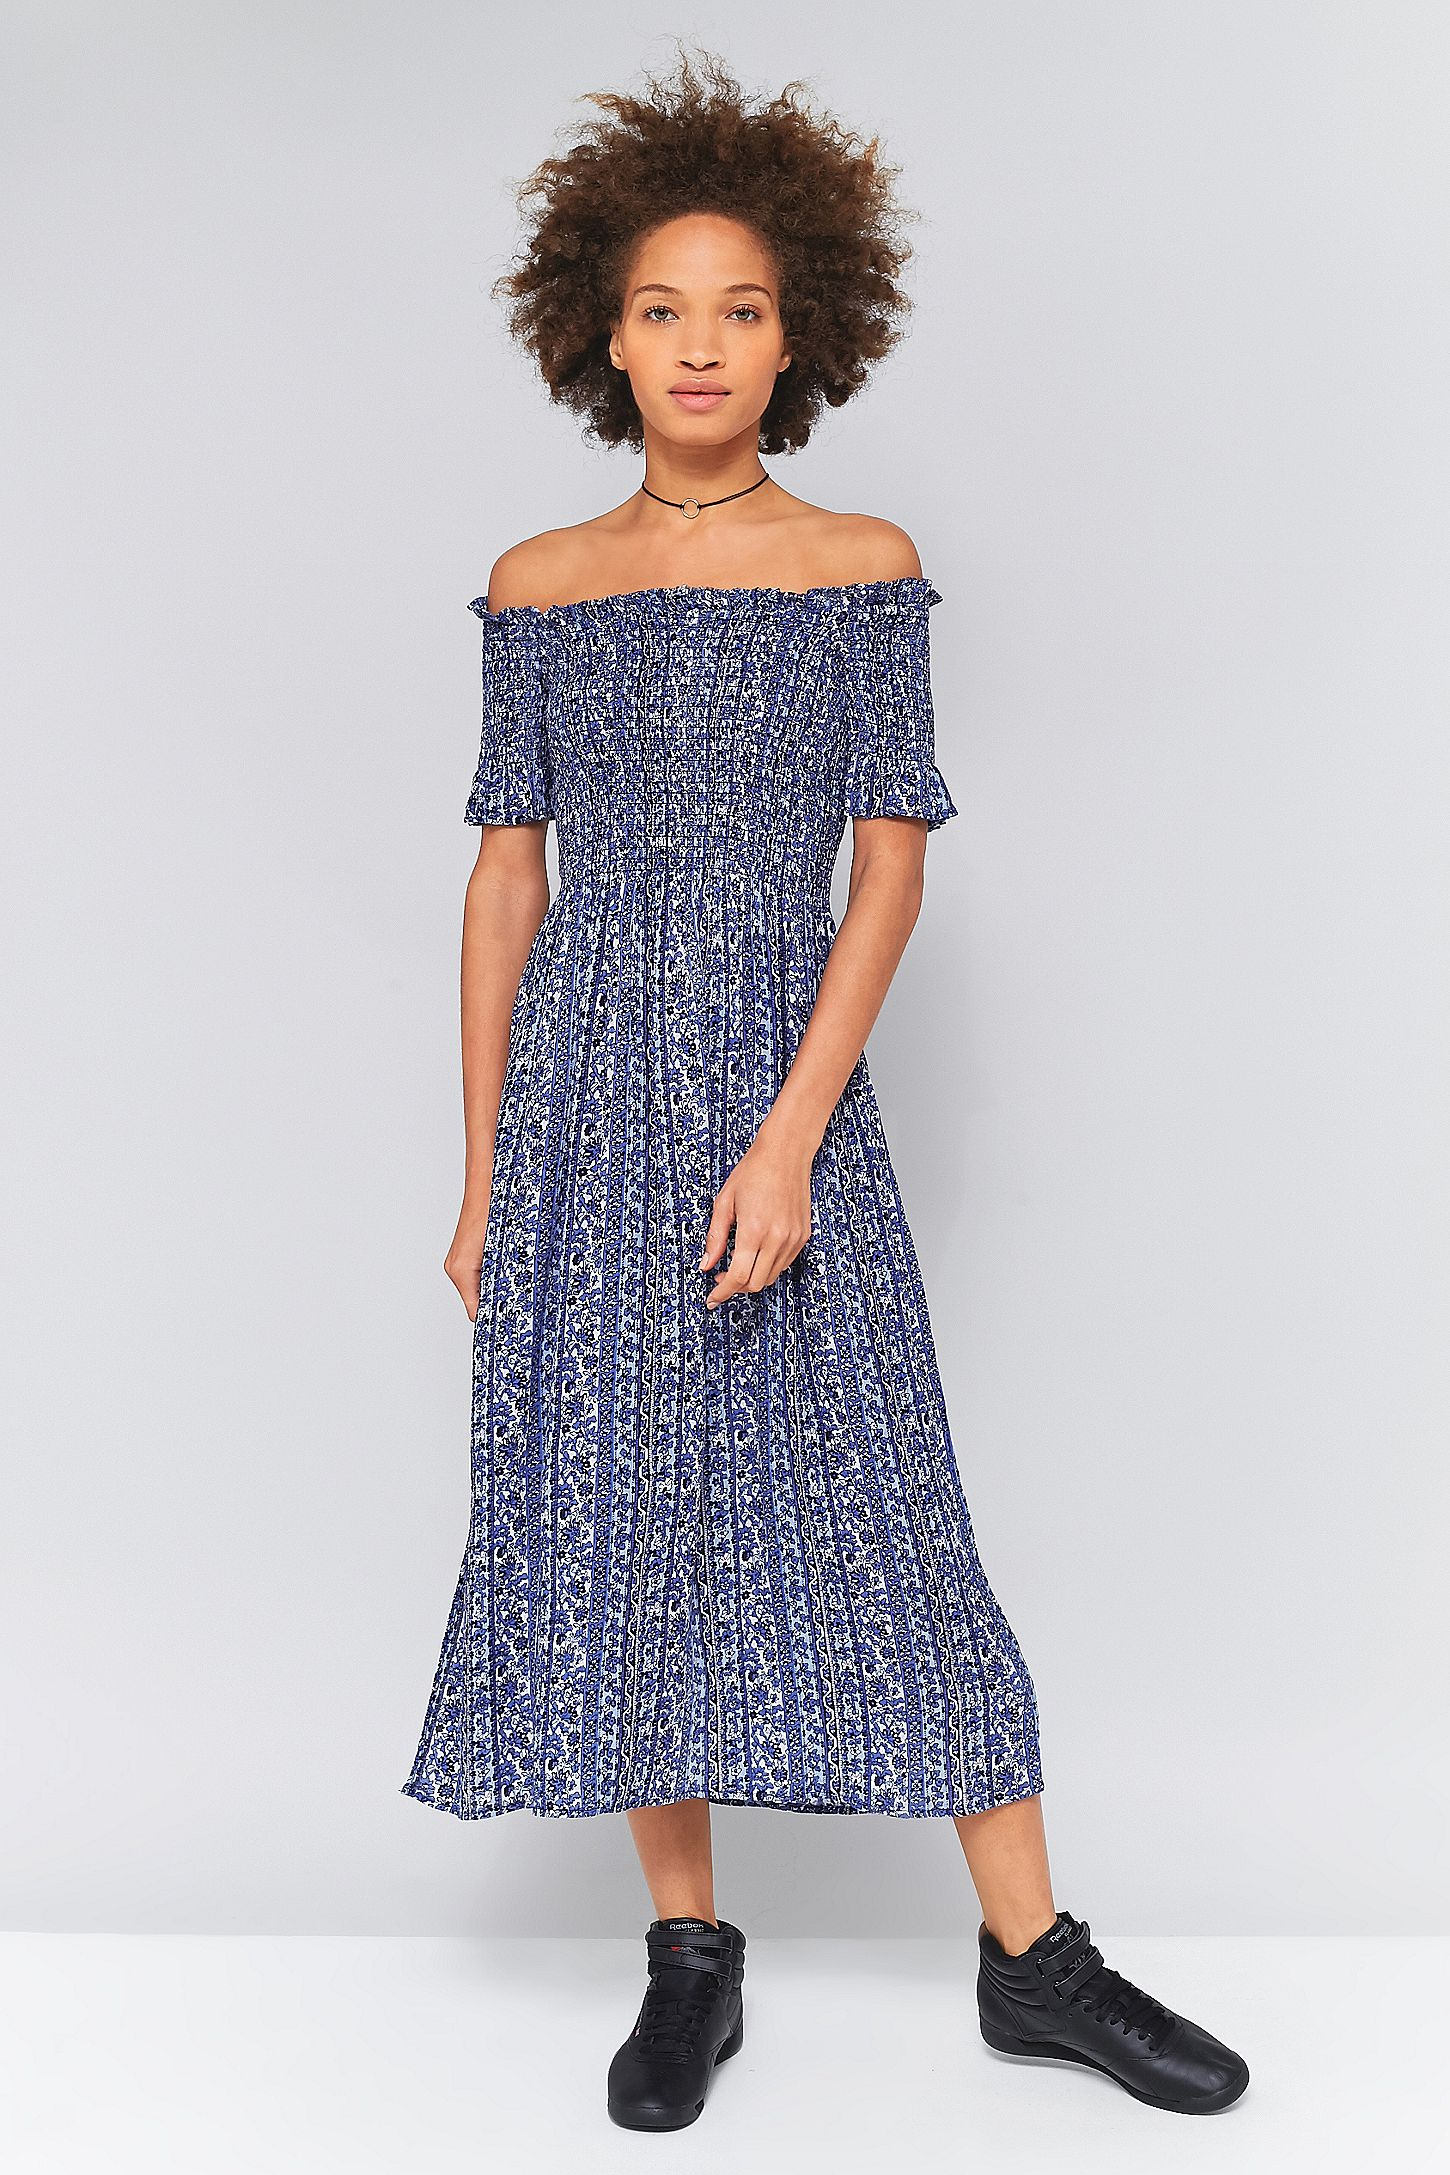 66ad7b72dde1 Kimchi Blue Picnic Blue Floral Smocked Off-The-Shoulder Midi Dress. Click  on image to zoom. Hover to zoom. Double Tap to Zoom